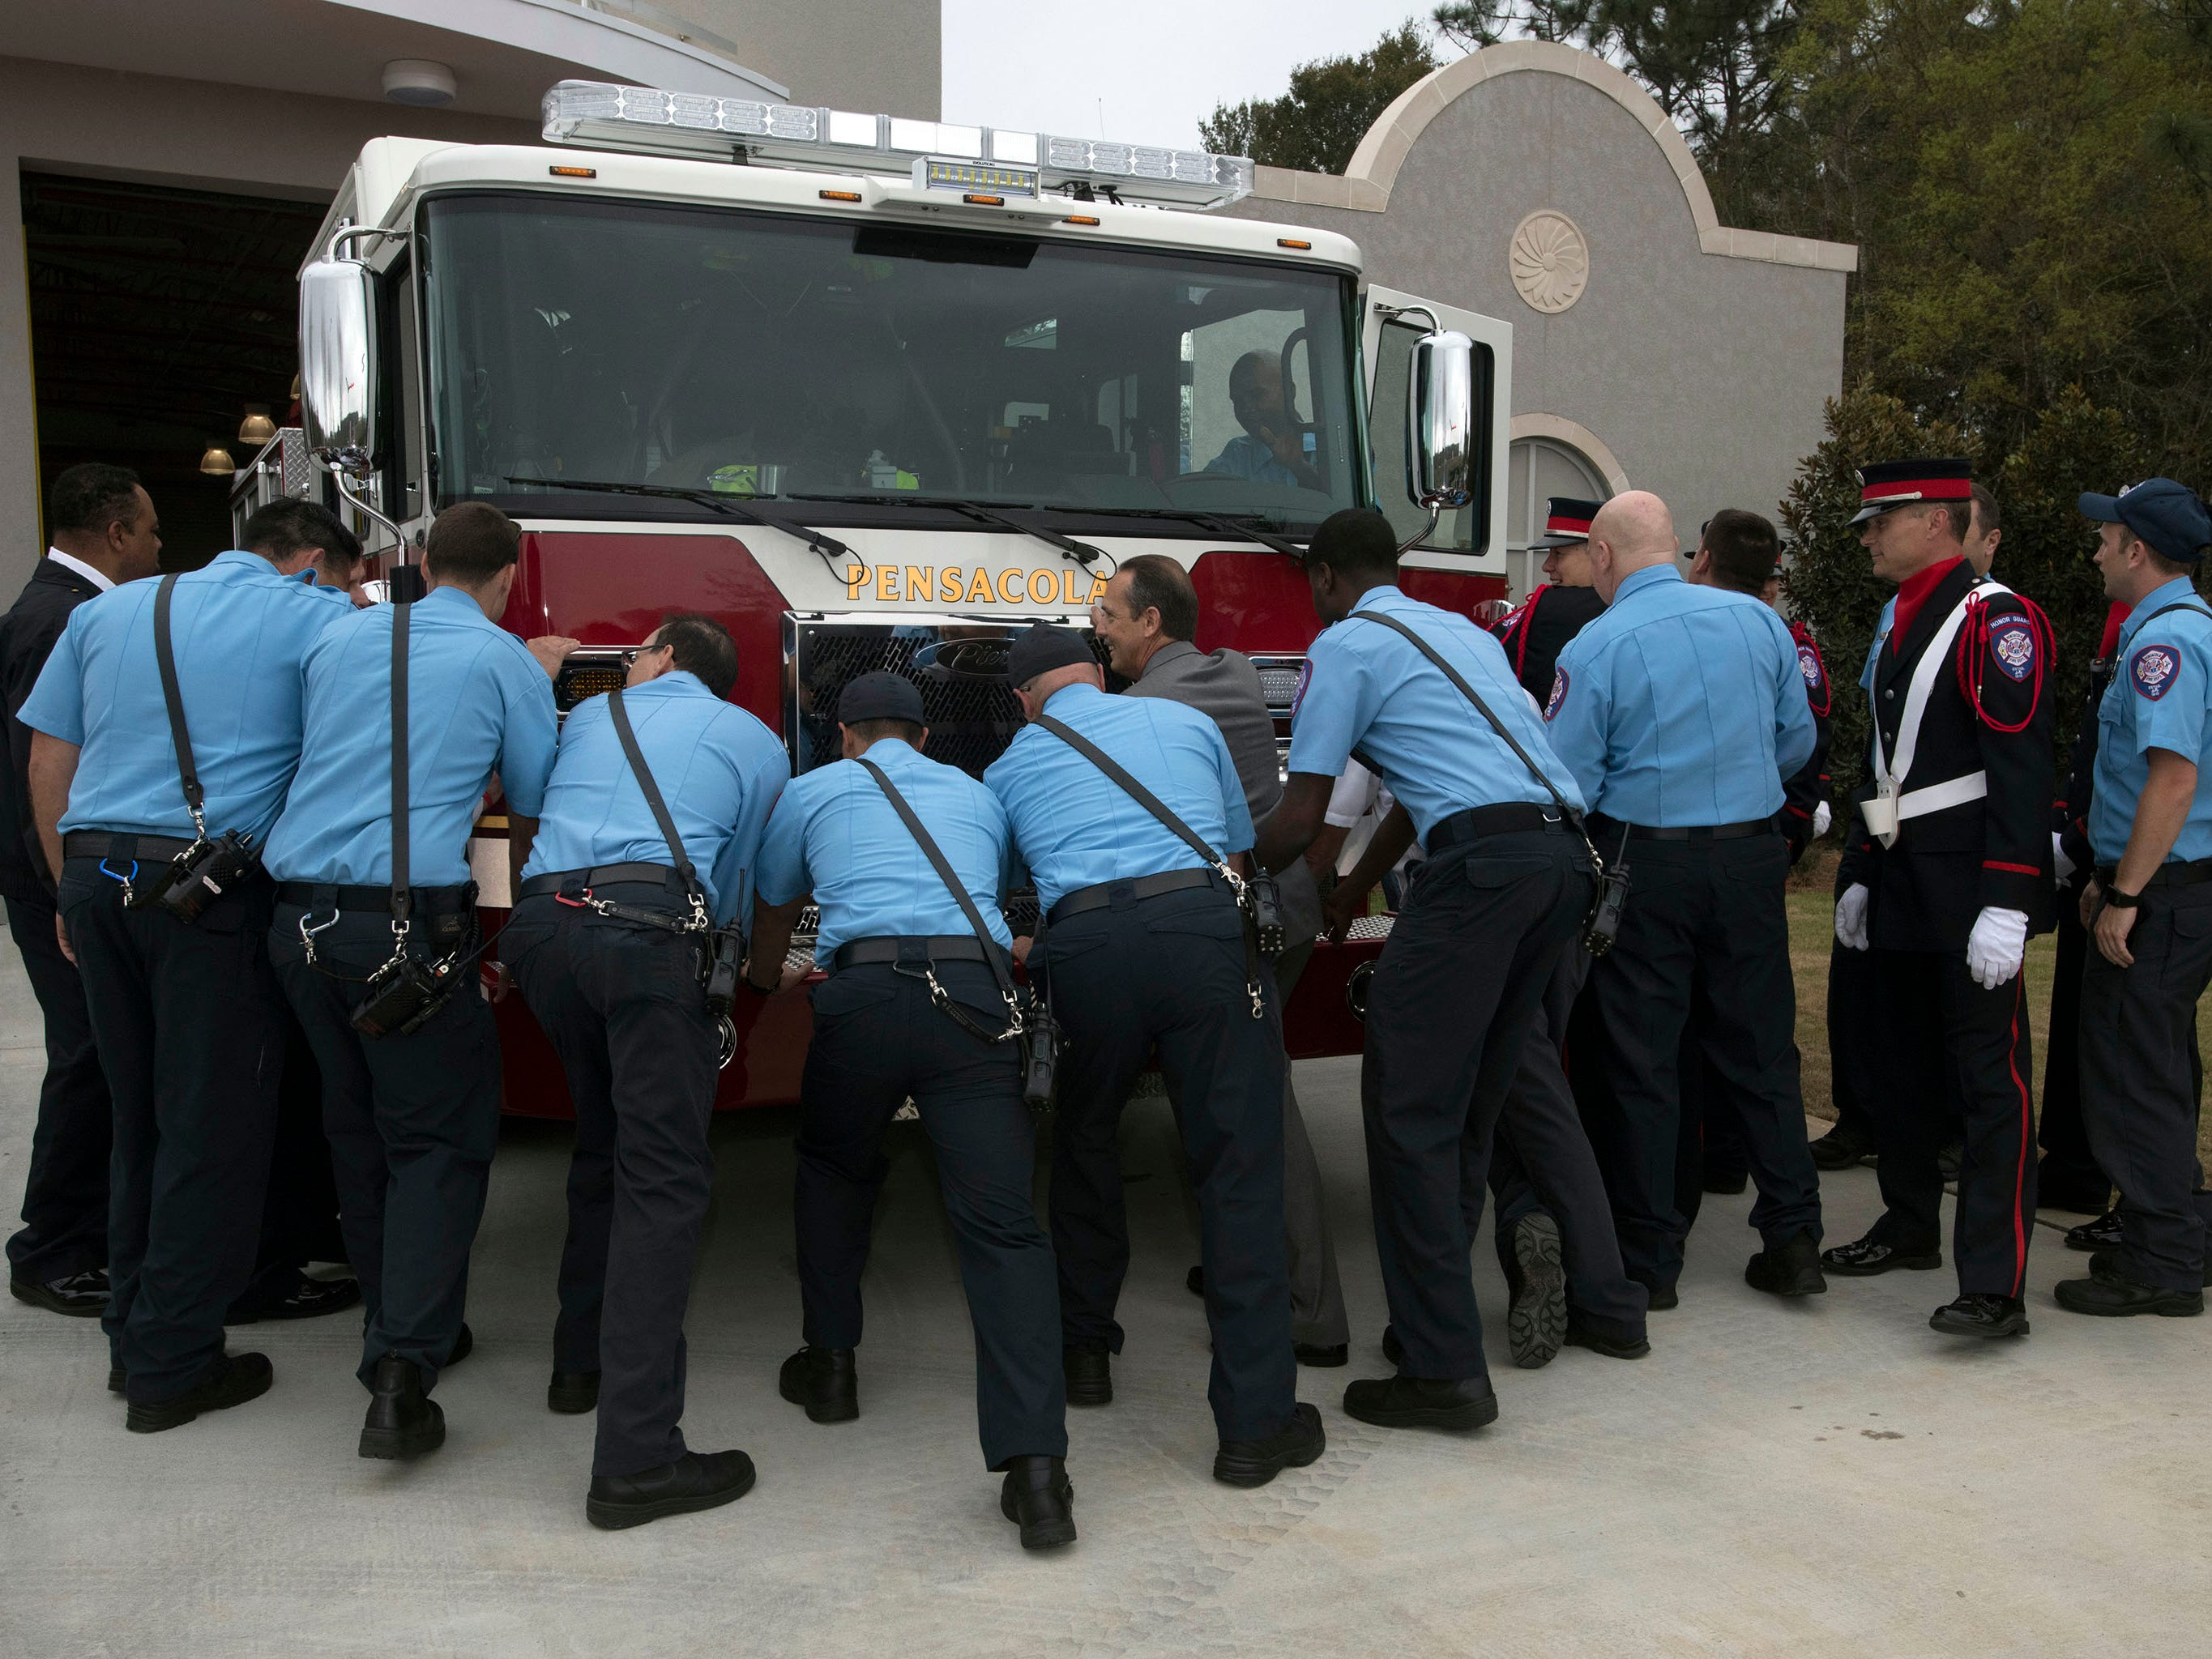 Members of the Pensacola Fire Department push department's newest engine into the new Fire Station Three off Summit Blvd during a dedication of the new firehouse on Thursday, March 14, 2019.